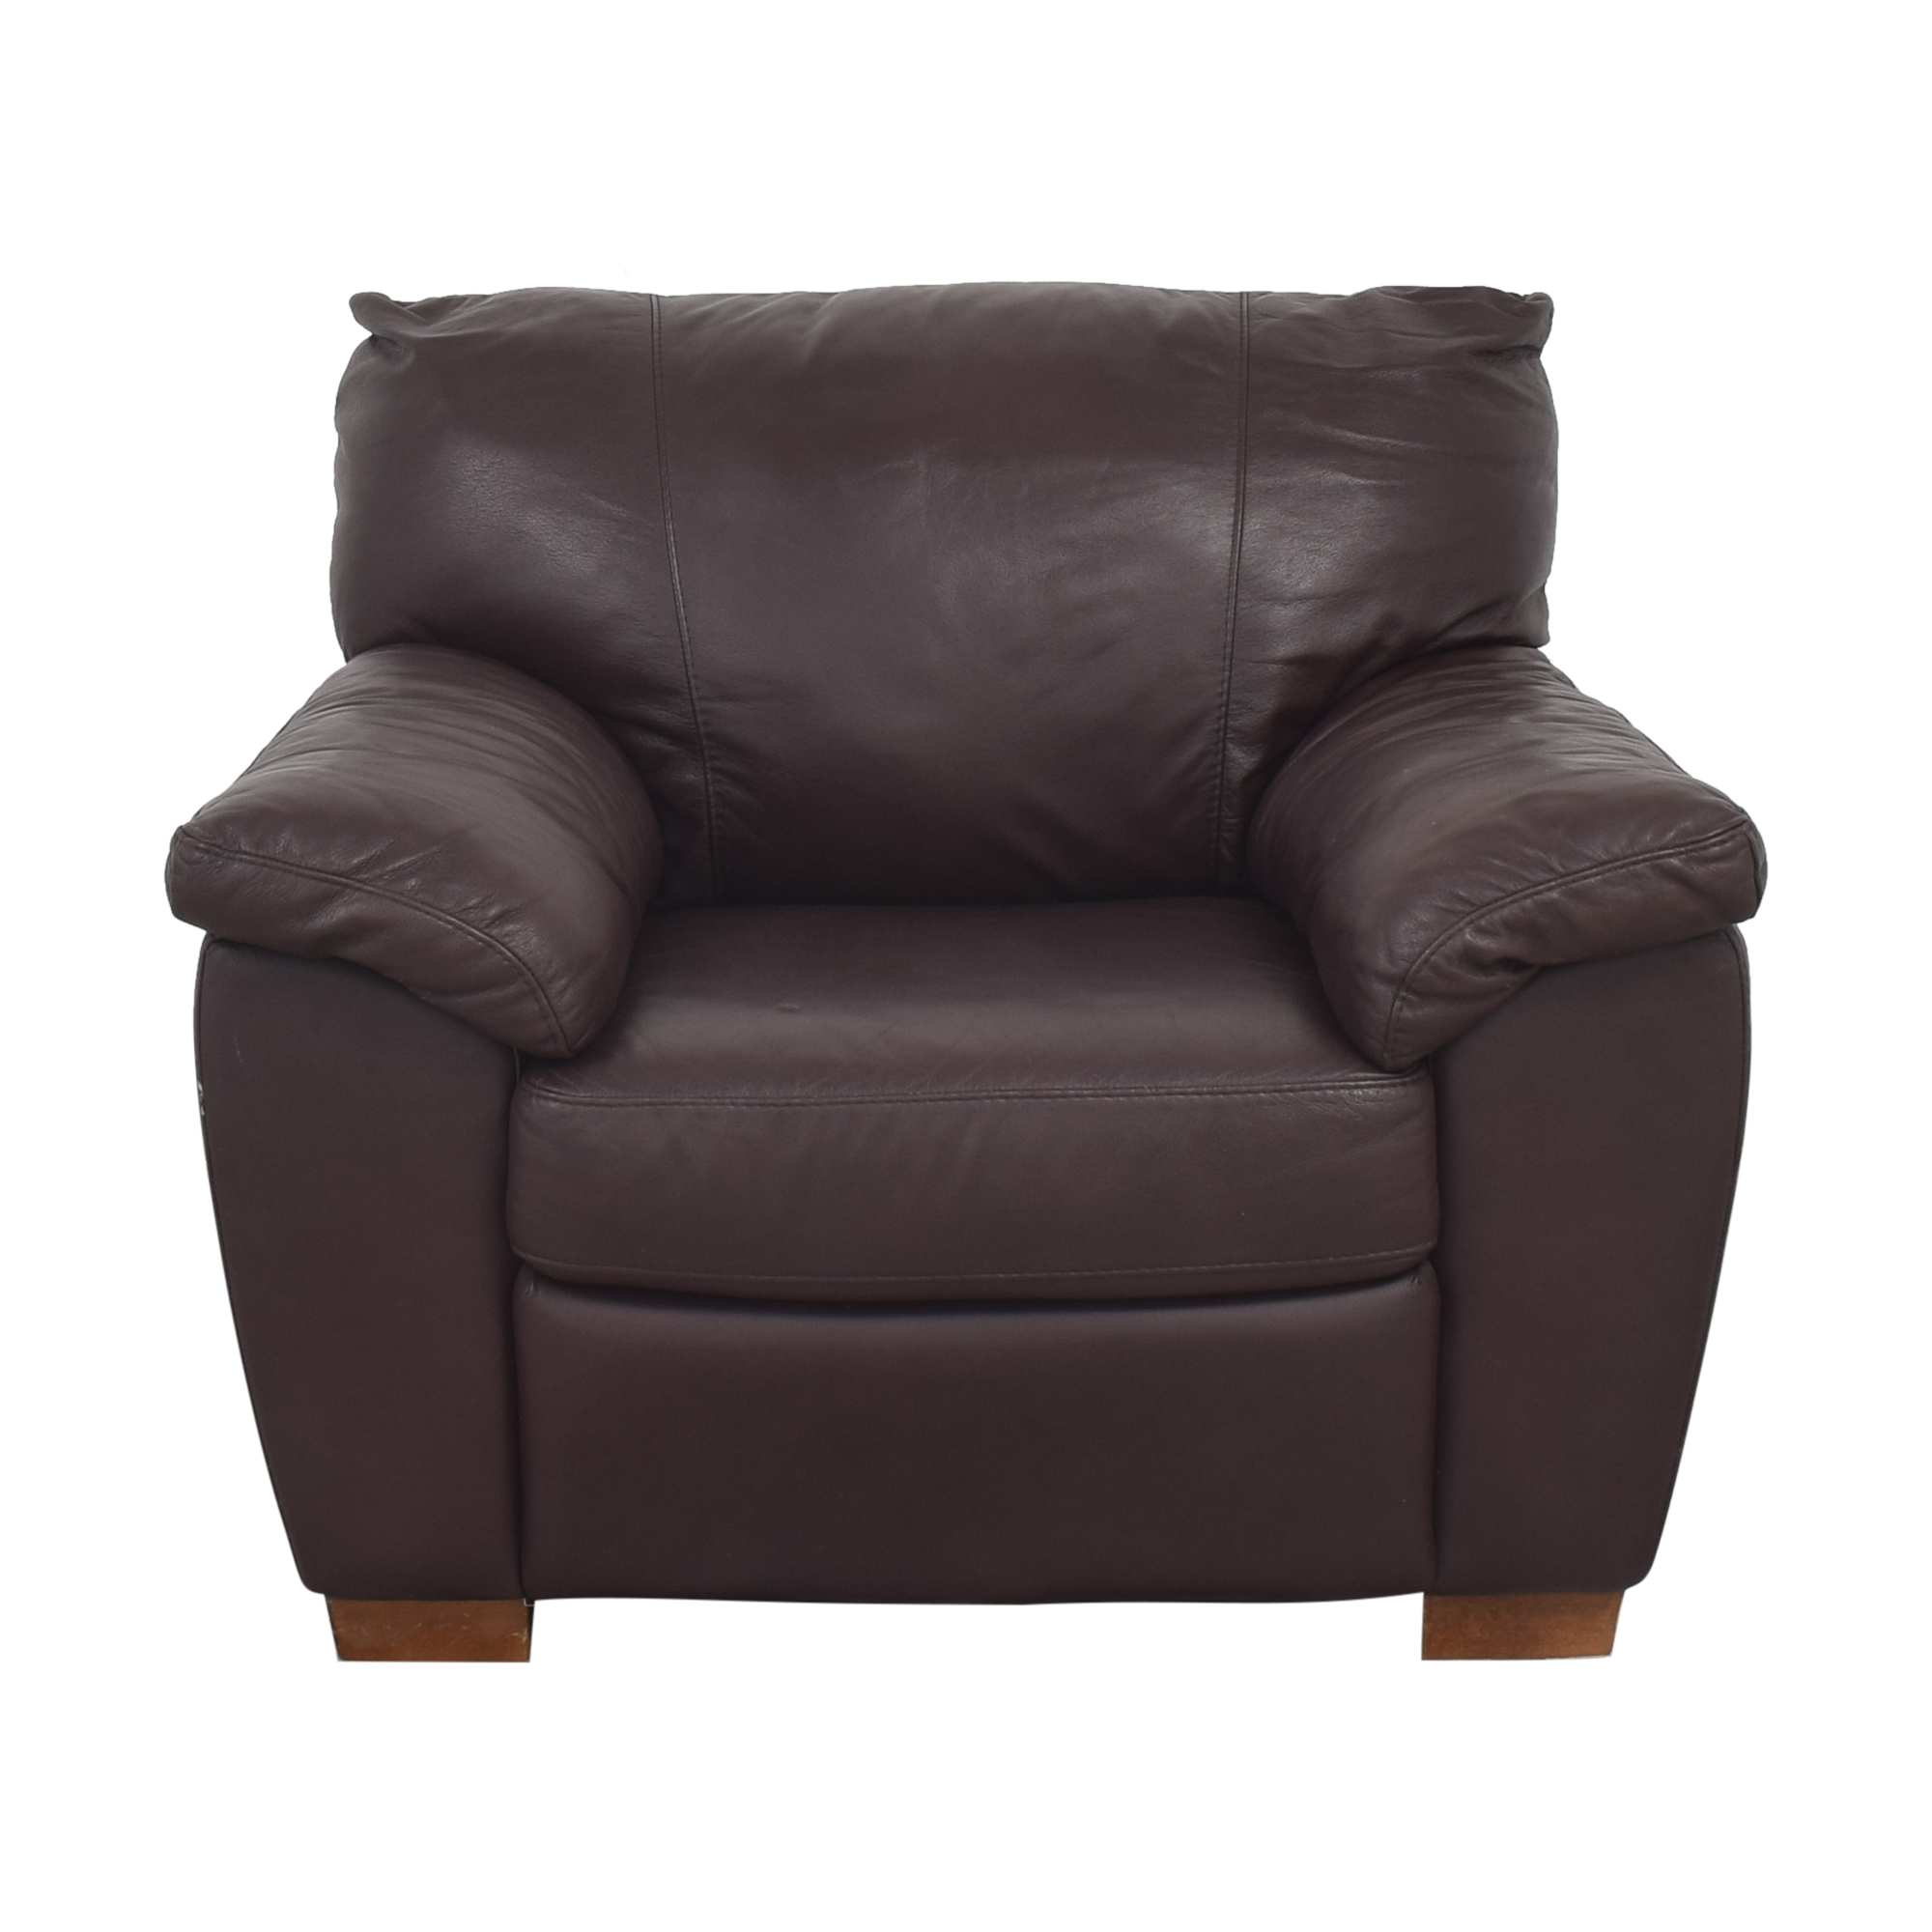 Contemporary Accent Chair price